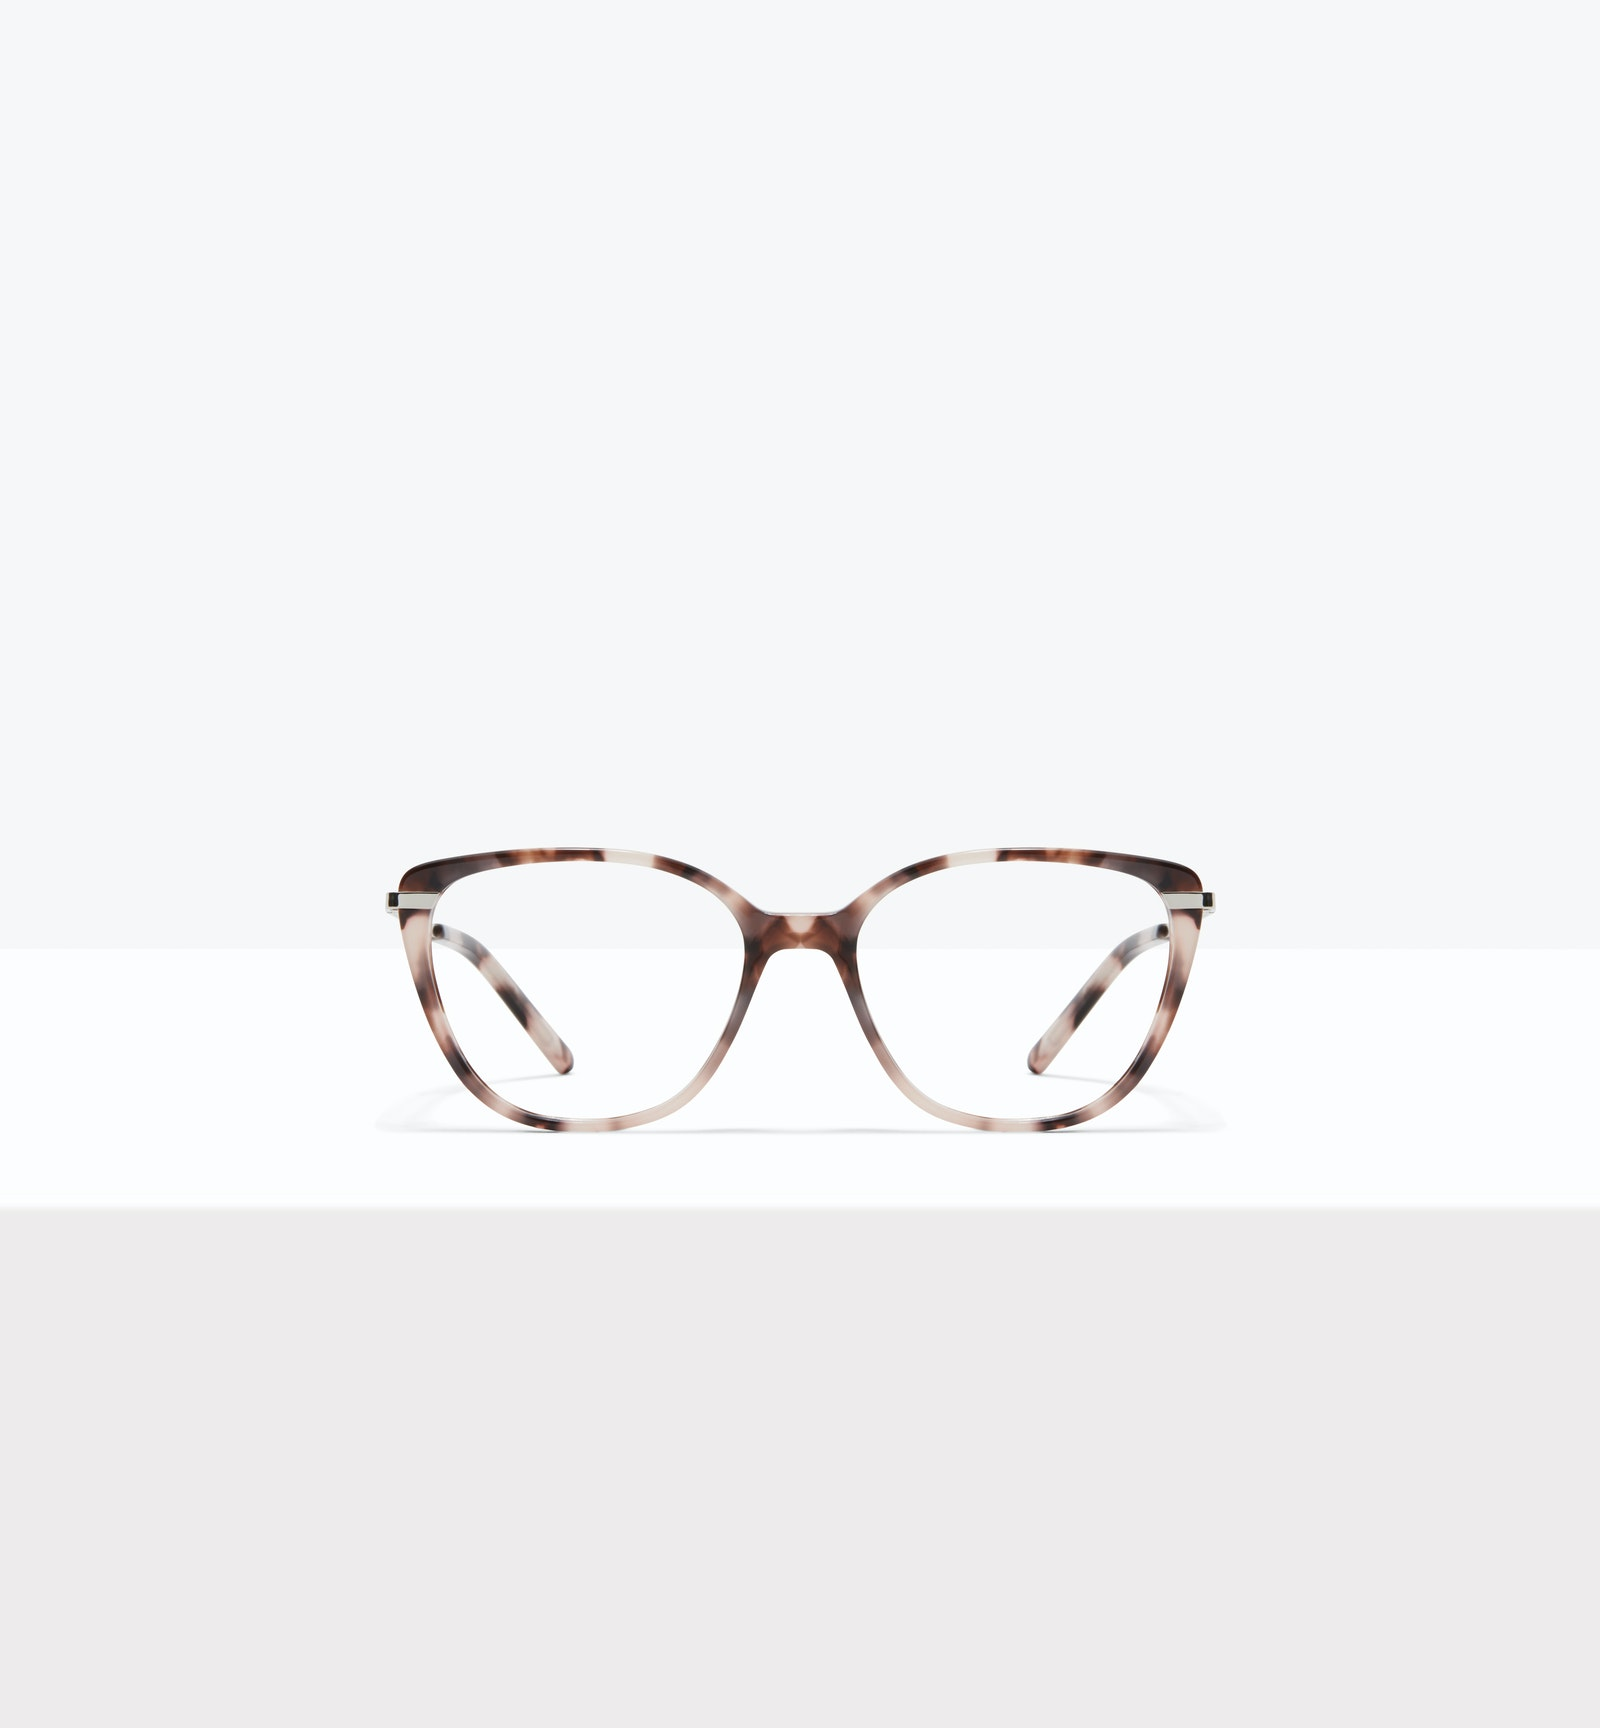 Affordable Fashion Glasses Rectangle Square Eyeglasses Women Illusion M Marbled Pink